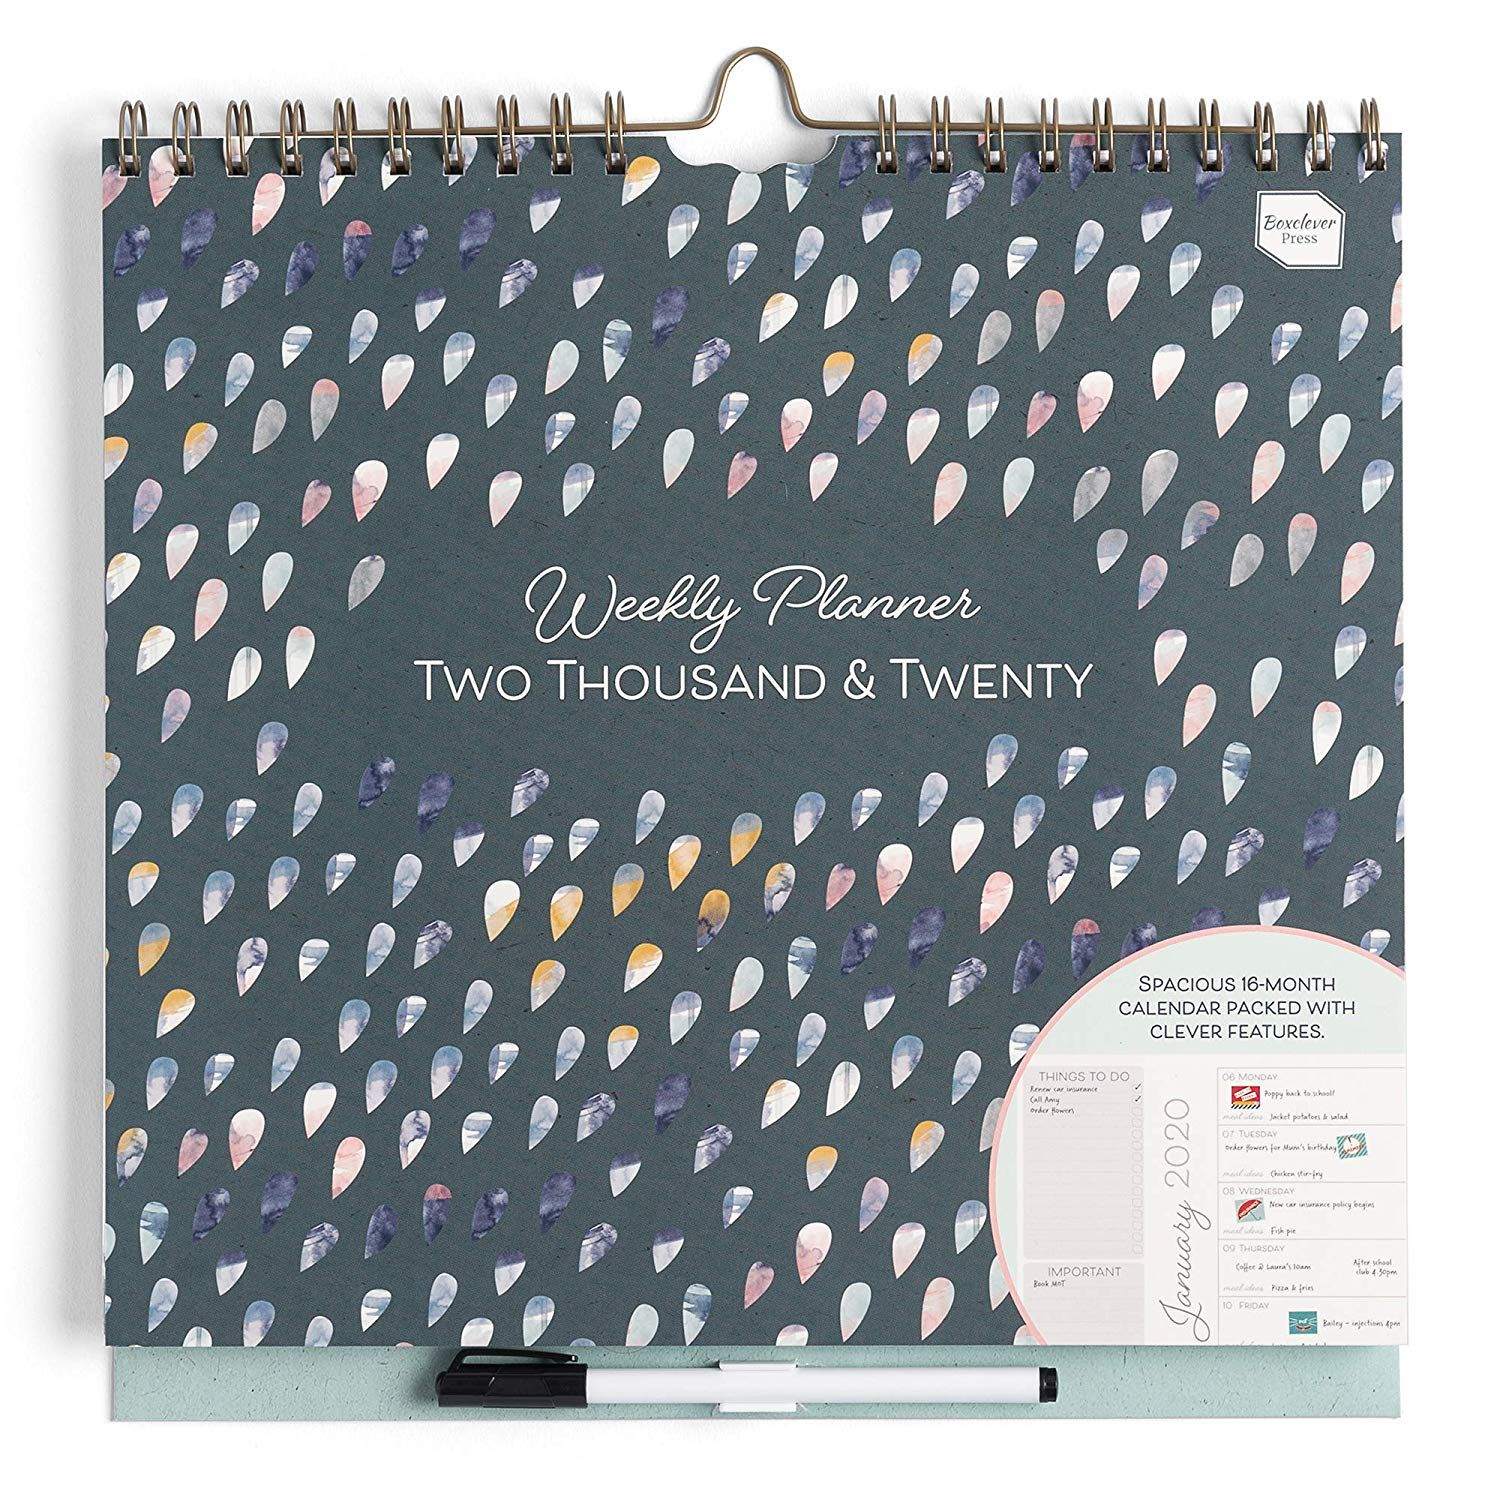 Pin On 2020 Calendars And Diaries